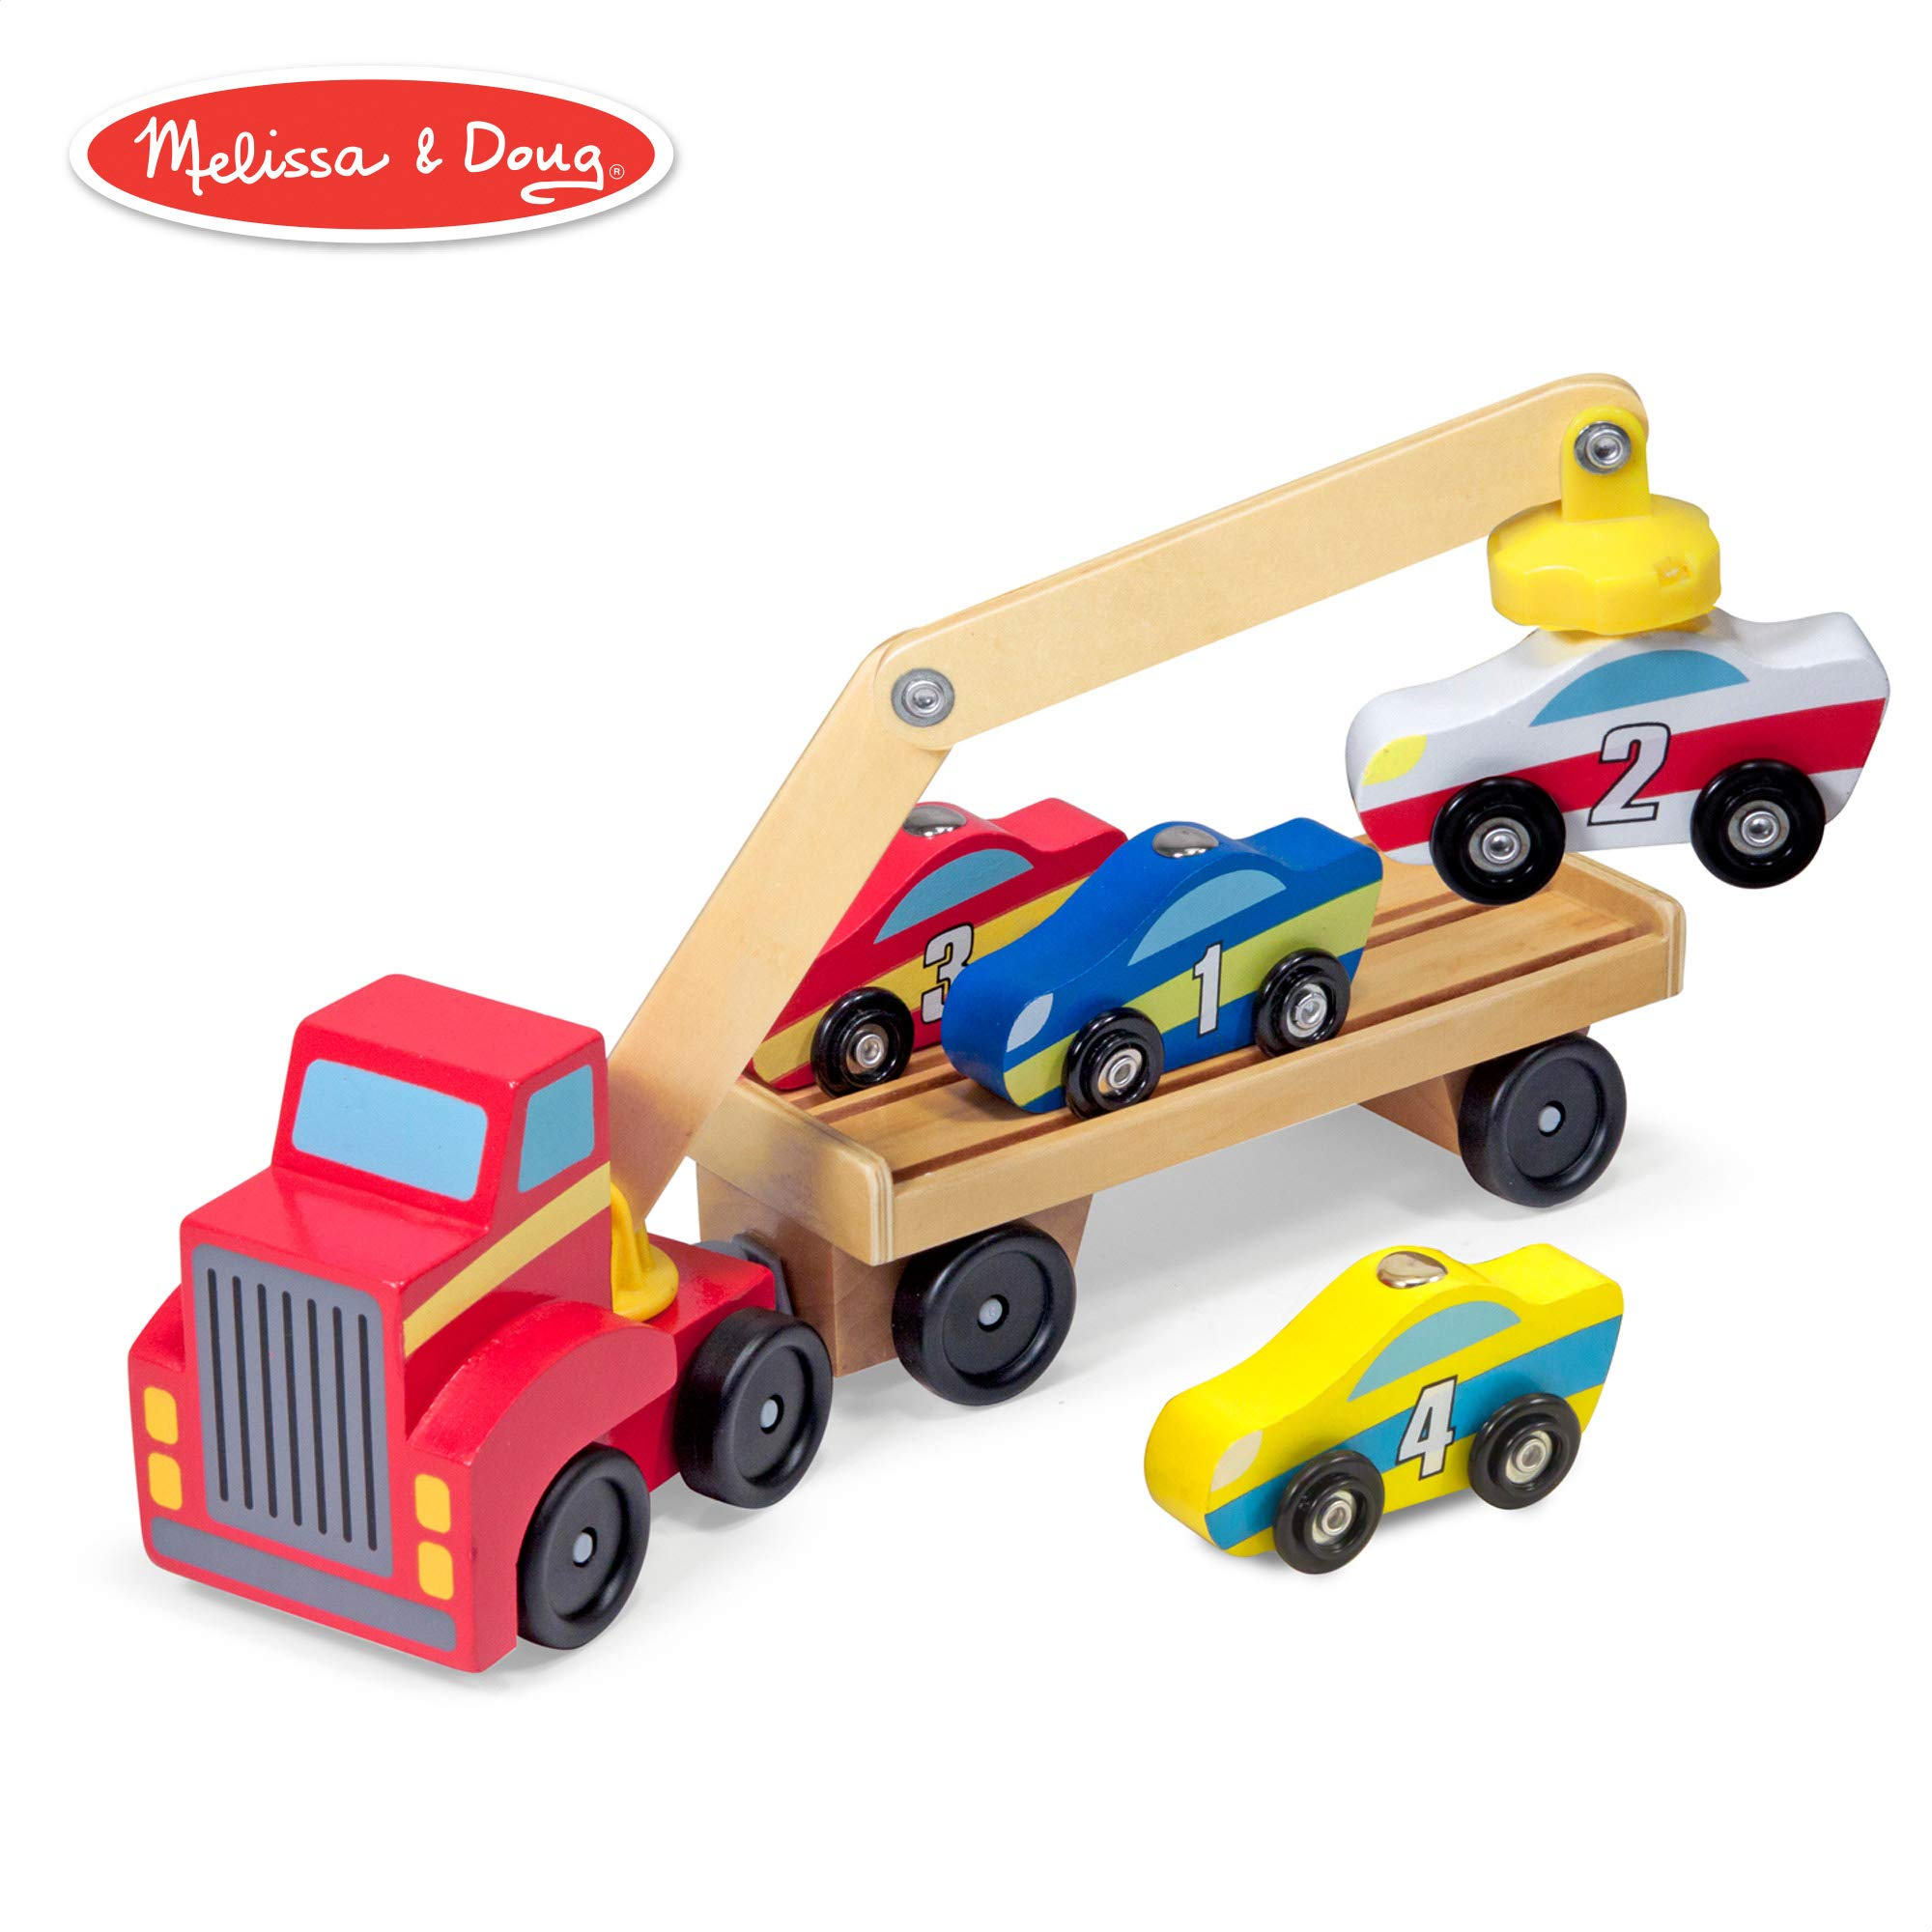 Melissa & Doug Magnetic Car Loader Wooden Toy Set, Cars & Trucks, Helps Develop Motor Skills, 4 Cars and 1 Semi-Trailer Truck, 5.75'' H x 13'' W x 3'' L by Melissa & Doug